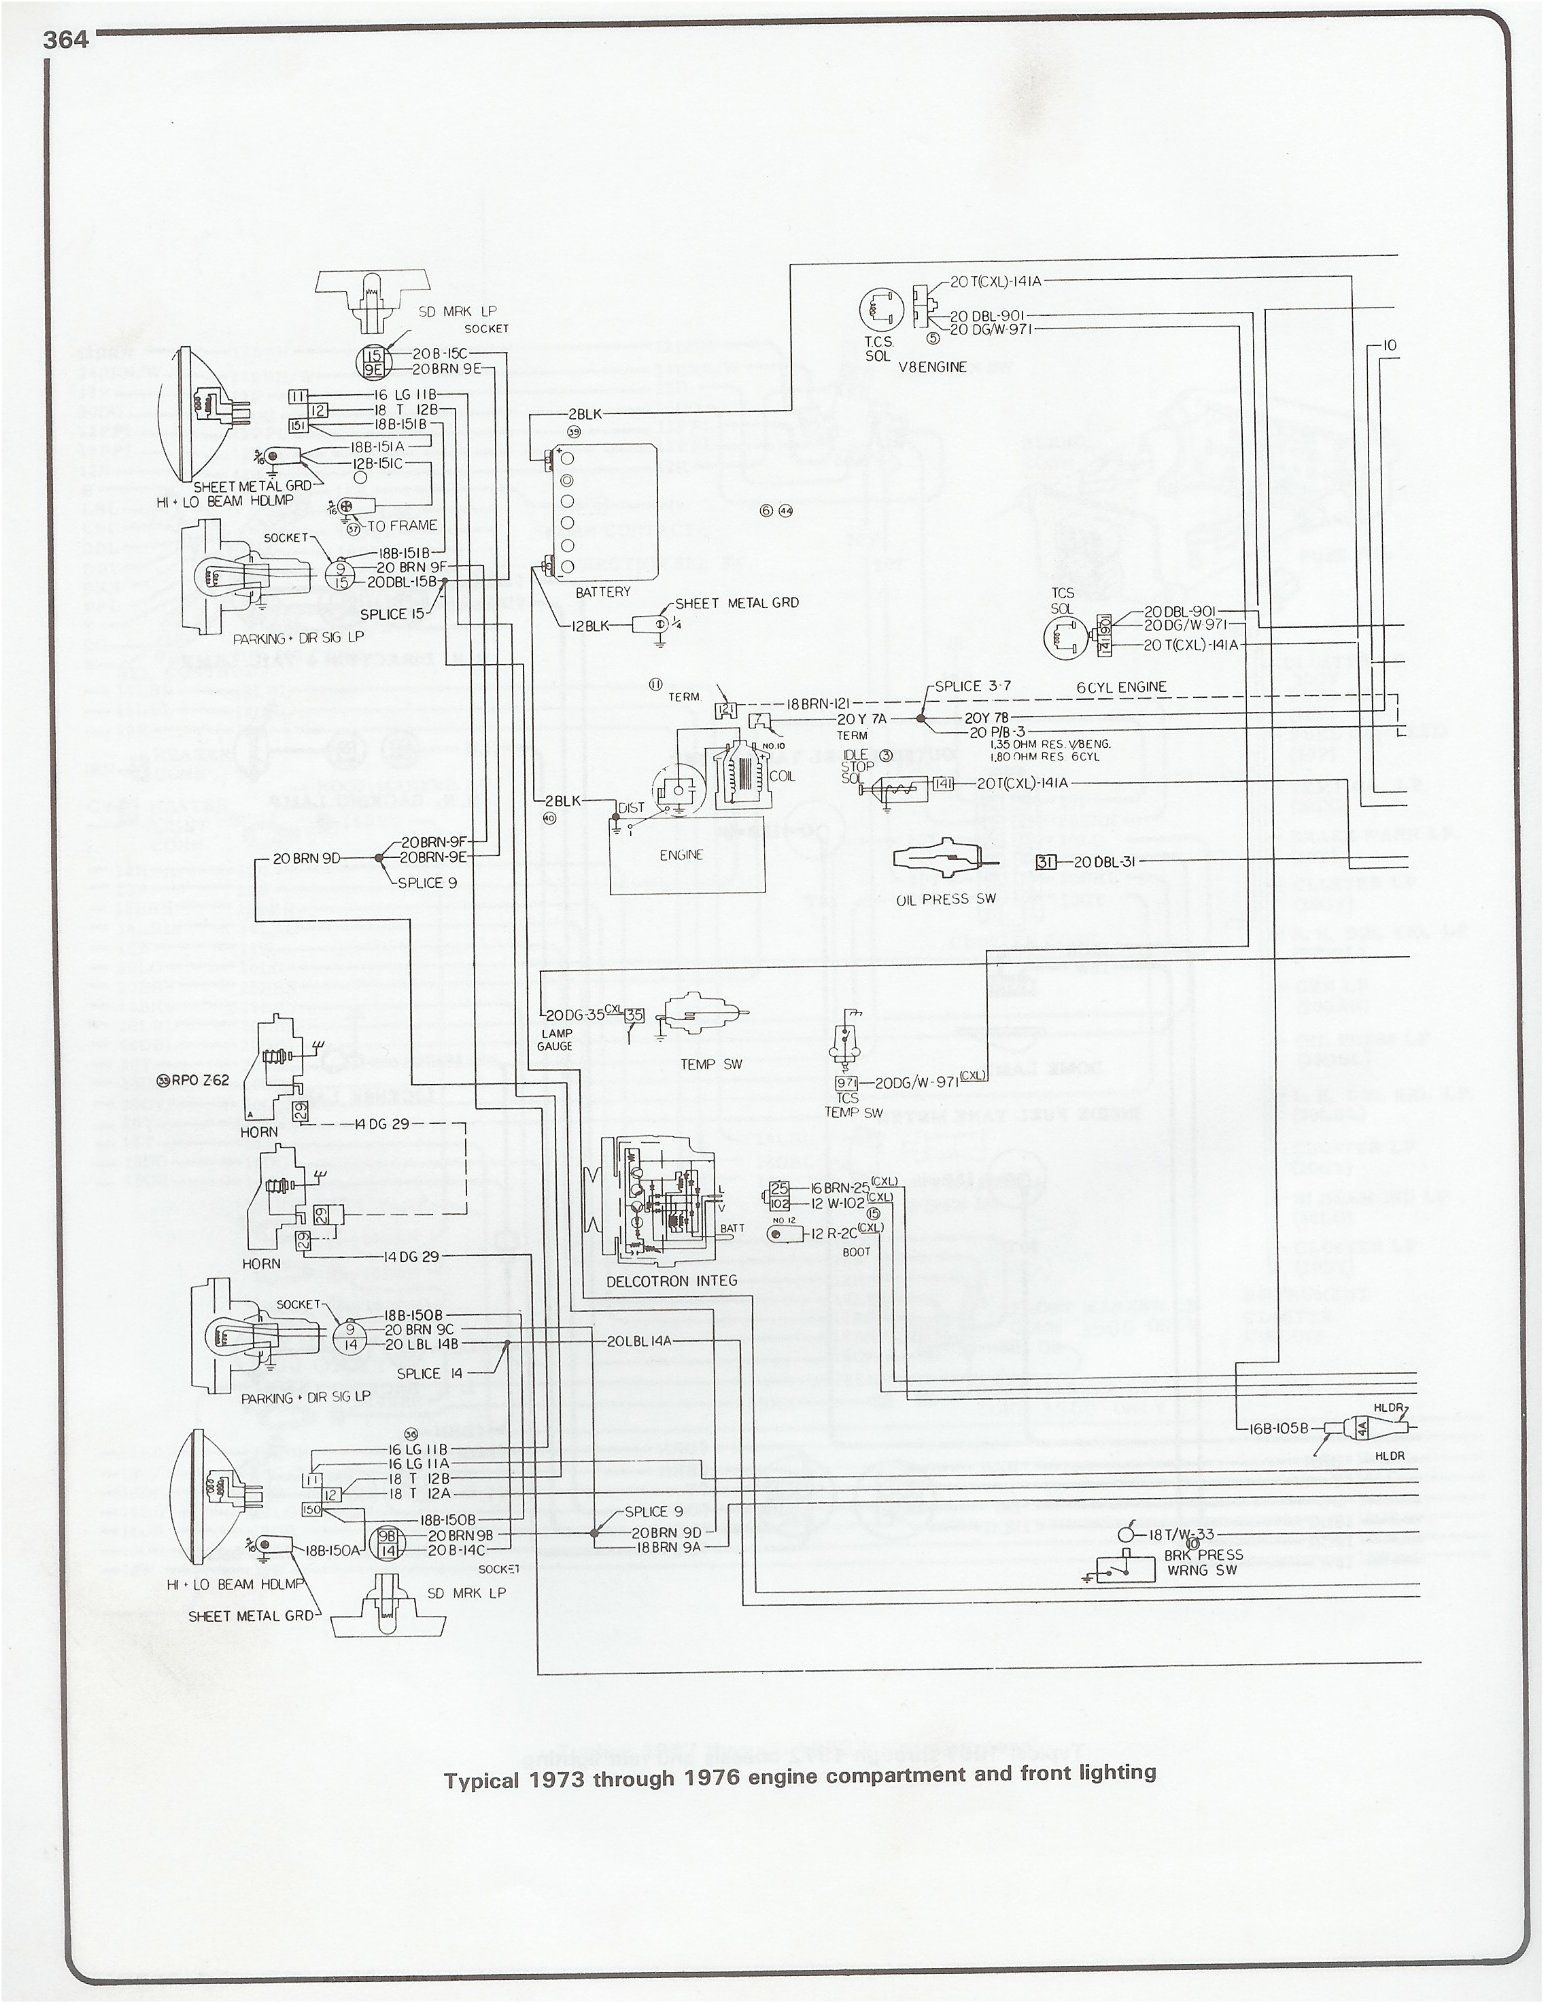 wiring diagram 1973 1976 chevy pickup chevy wiring diagram [ 1544 x 2003 Pixel ]